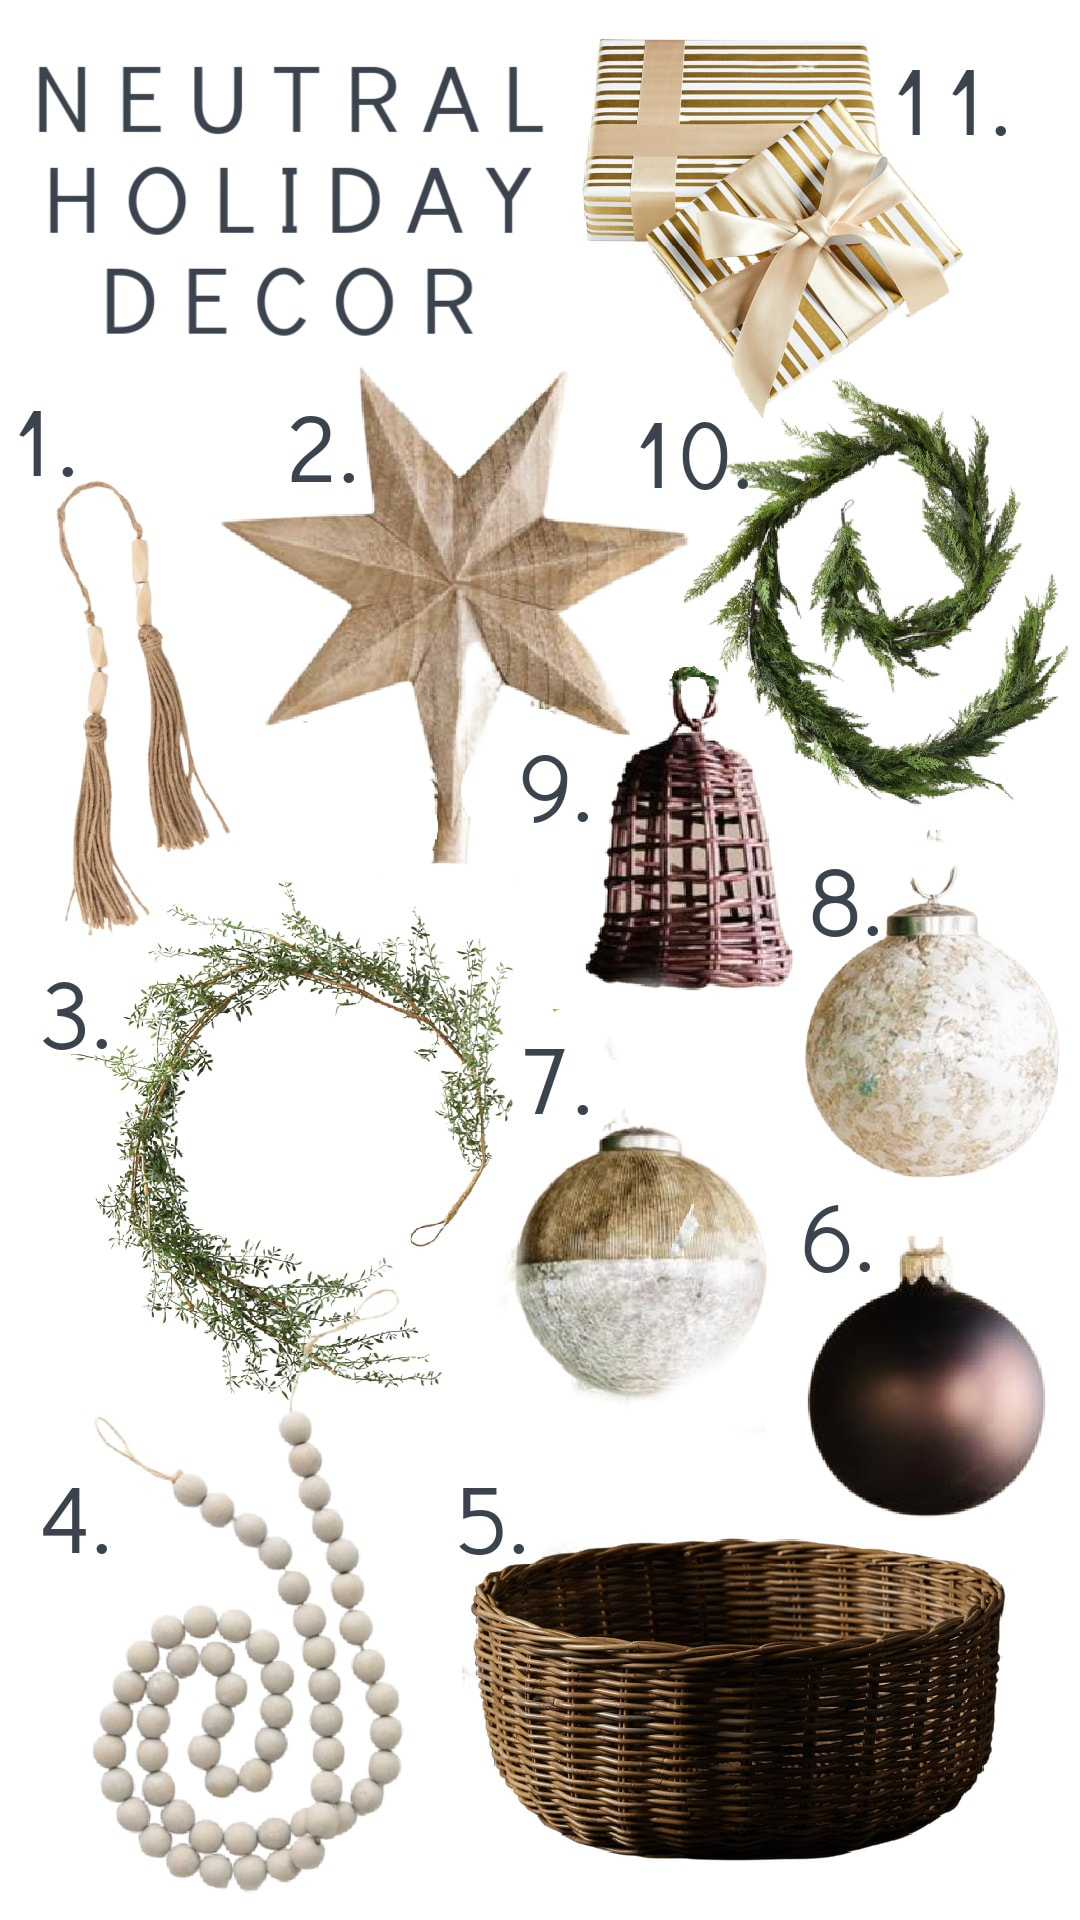 Neutral Christmas tree ornaments